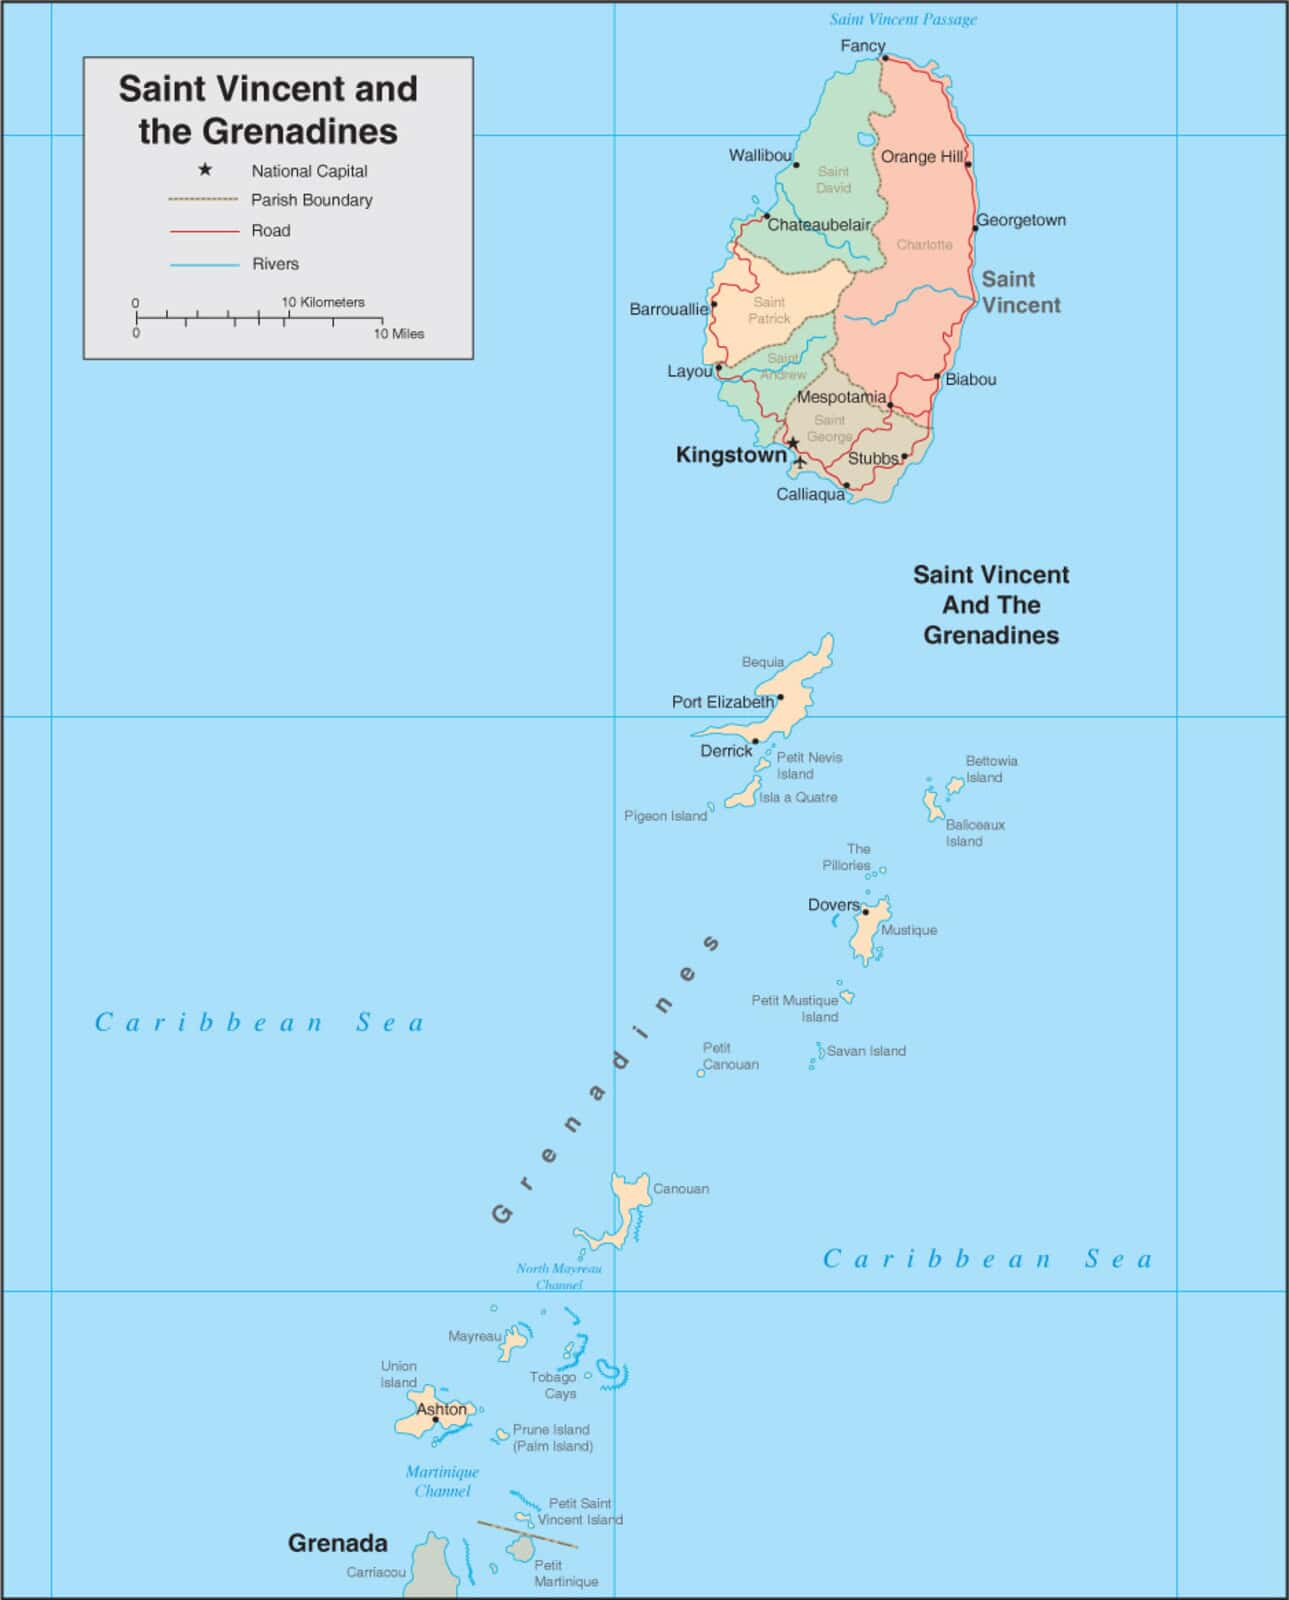 St Vincent Map - Map of St Vincent and the Grenadines